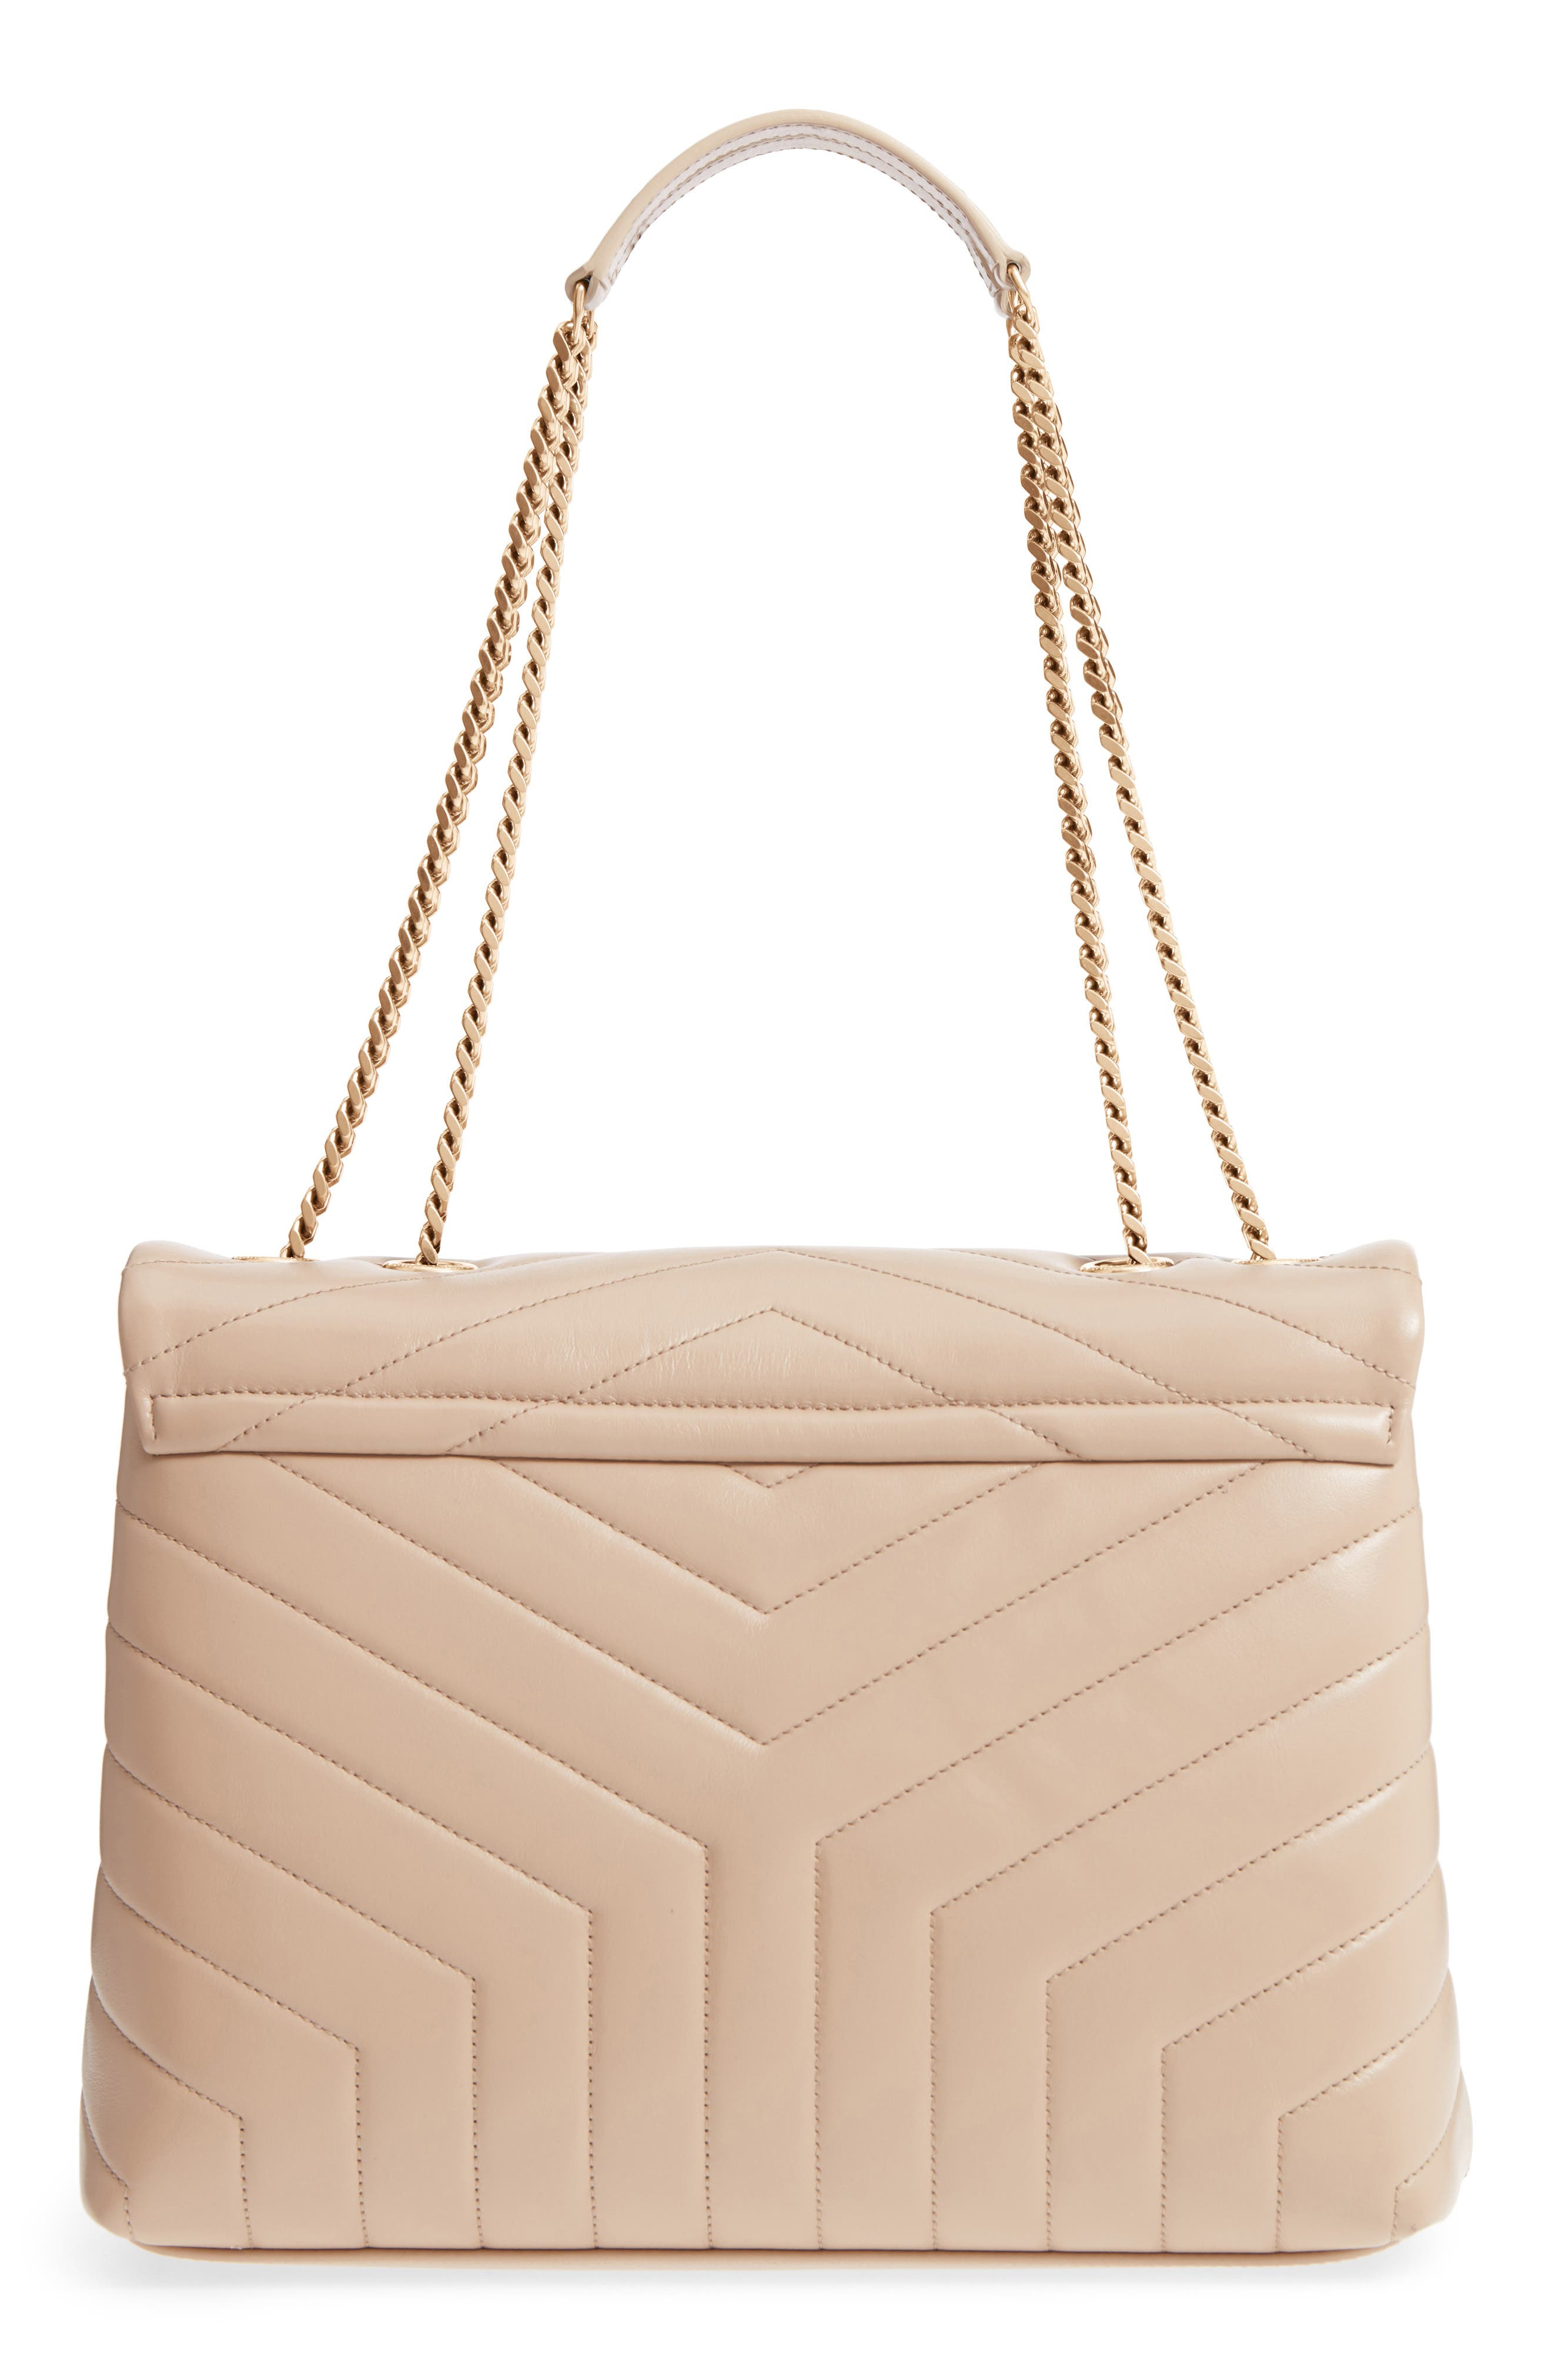 SAINT LAURENT, Medium Loulou Matelassé Calfskin Leather Shoulder Bag, Alternate thumbnail 3, color, LIGHT NATURAL